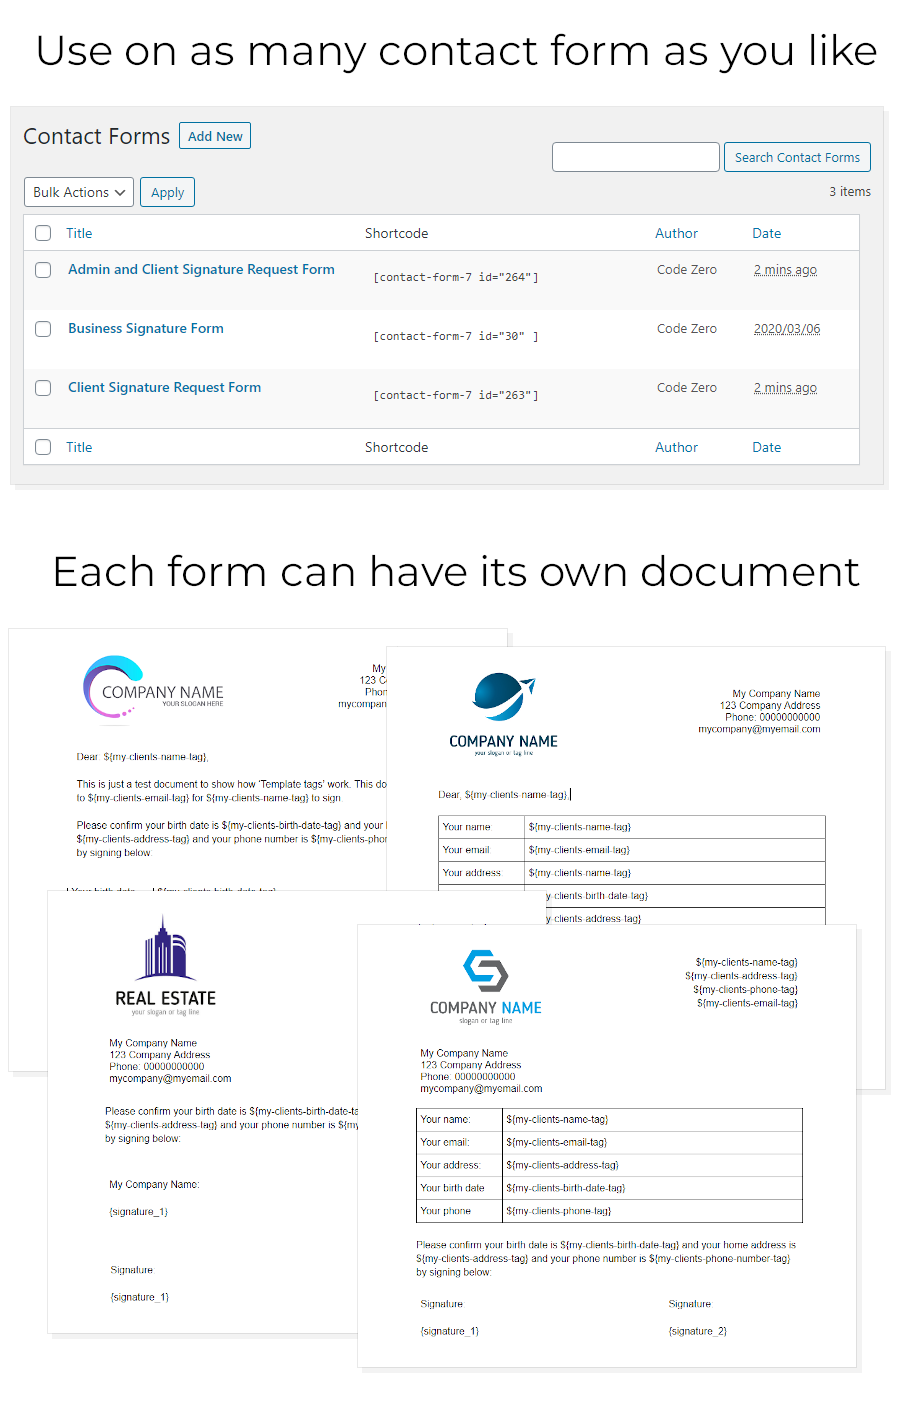 Contact Form 7 Docusign Envelope Creator for WordPress - 3